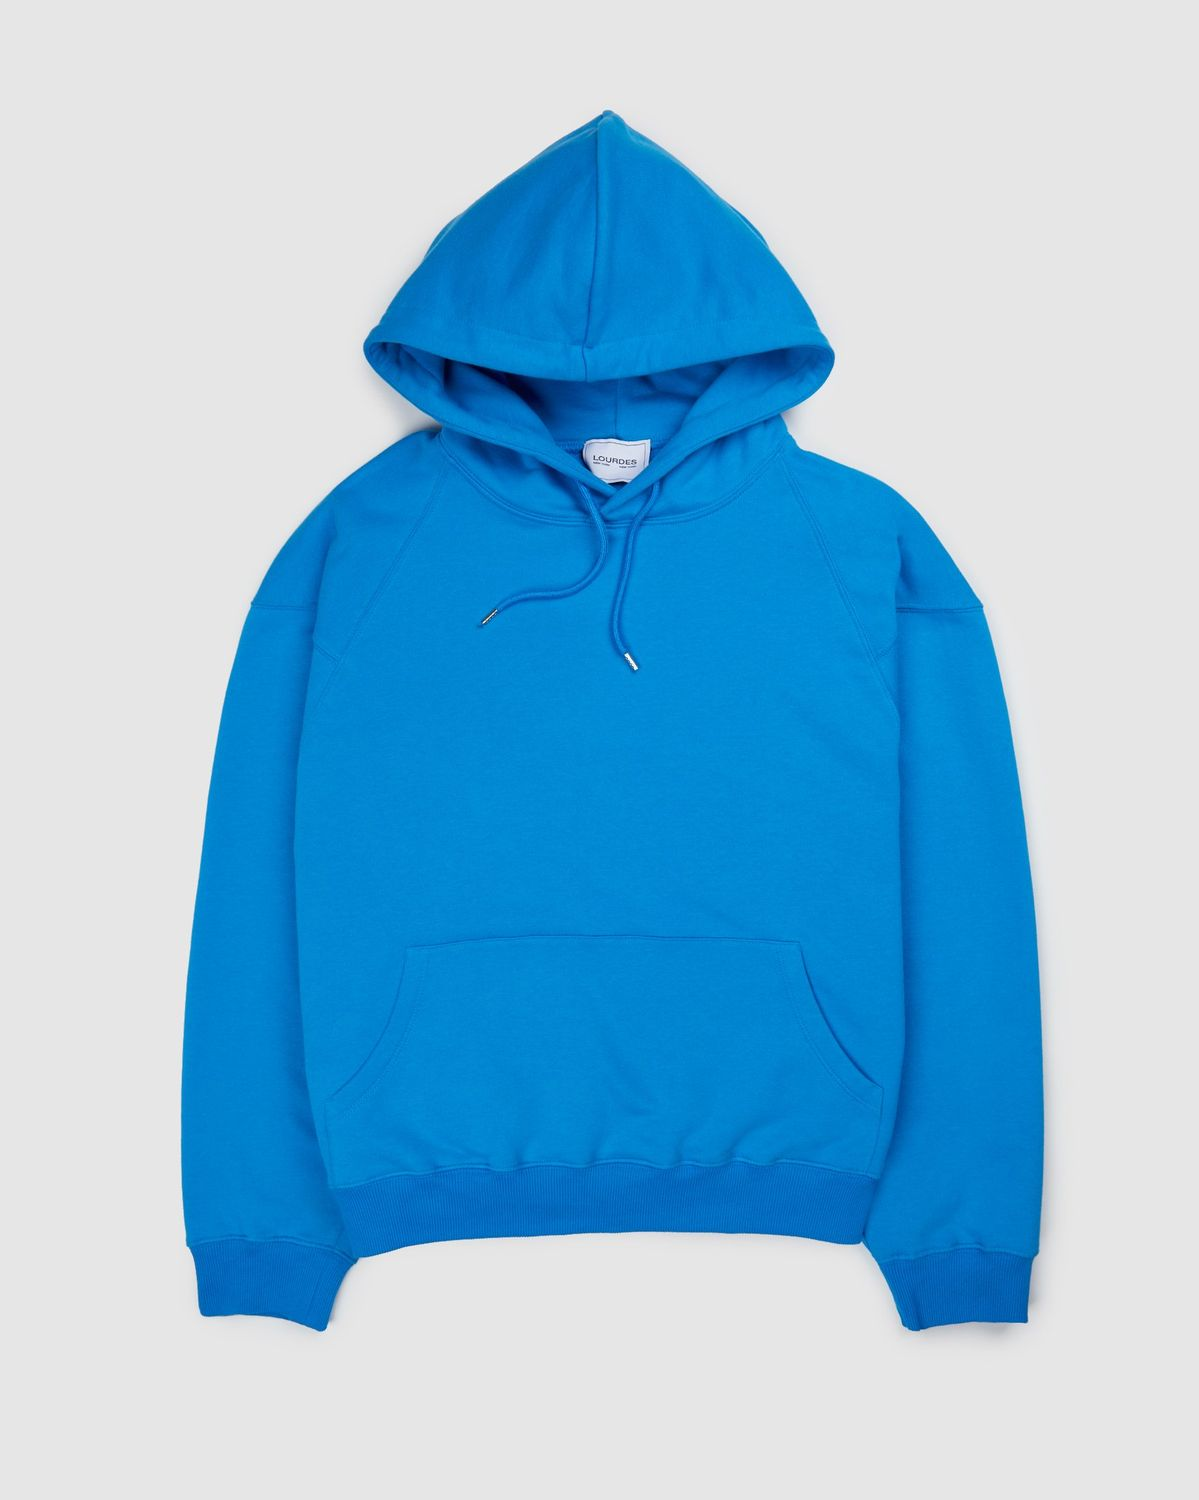 Lourdes NYC - Fawn Hoodie - Blue - Image 2